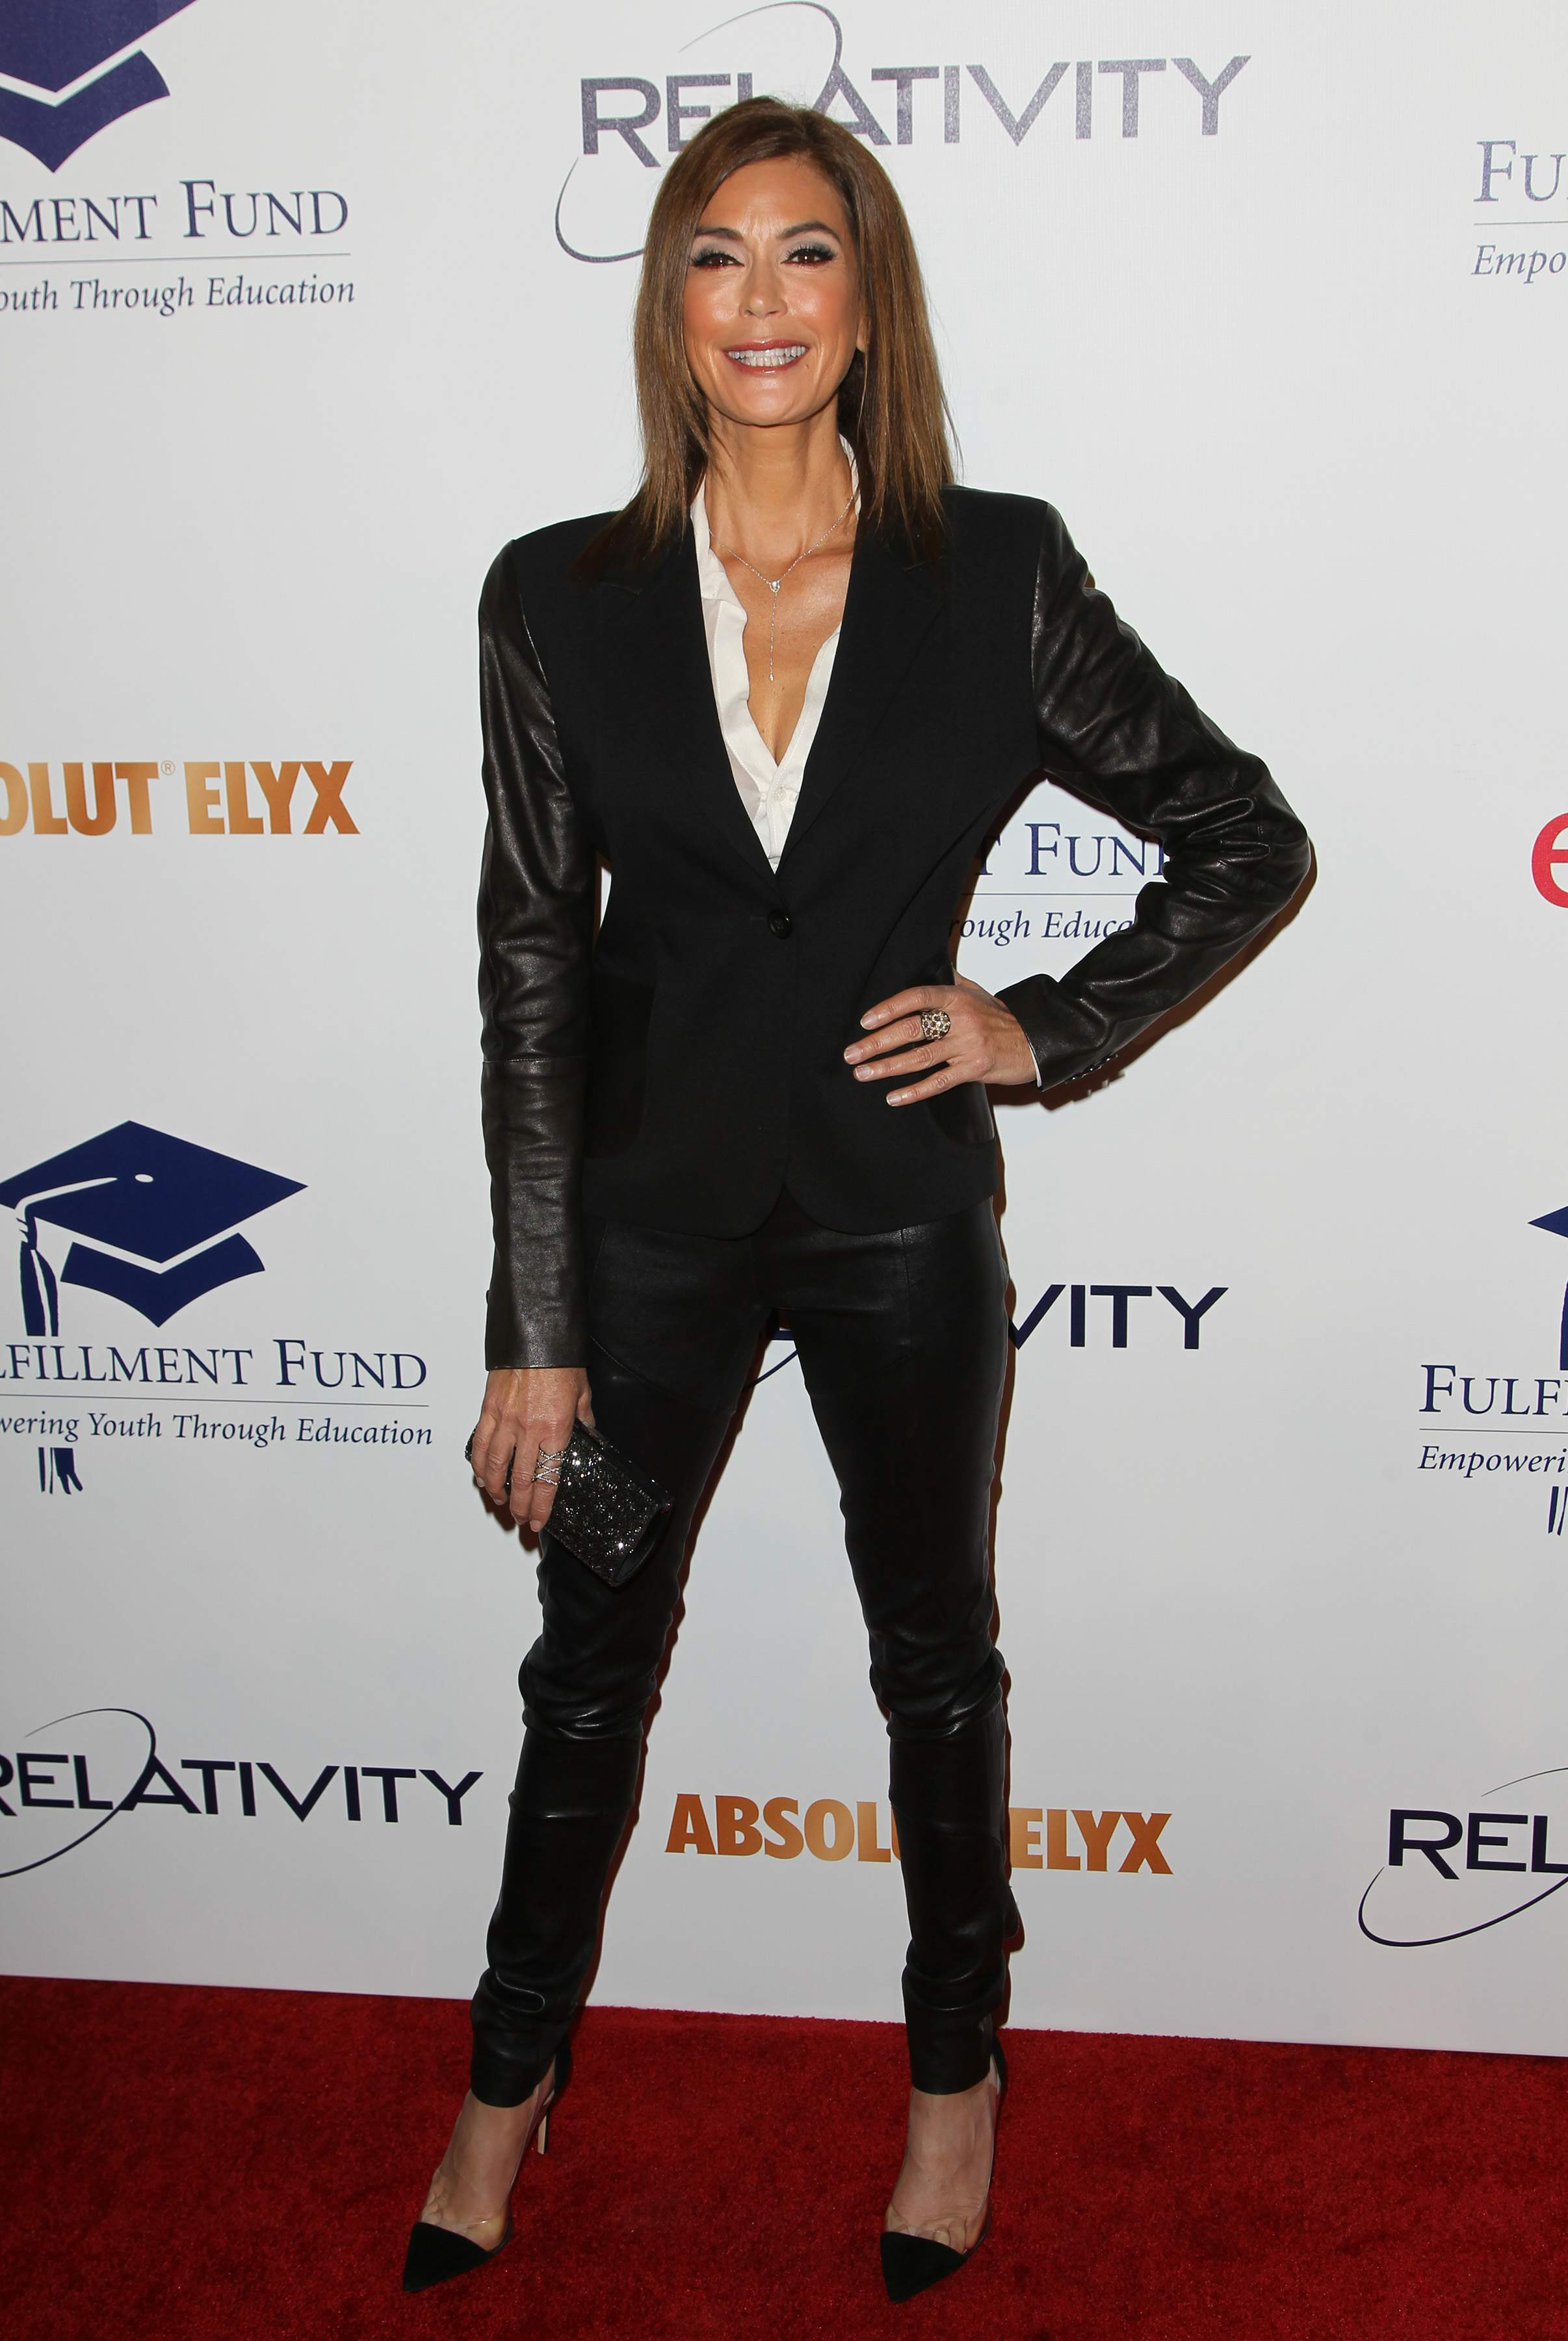 Teri Hatcher attends the 20th Annual Fulfillment Fund Stars Benefit Gala